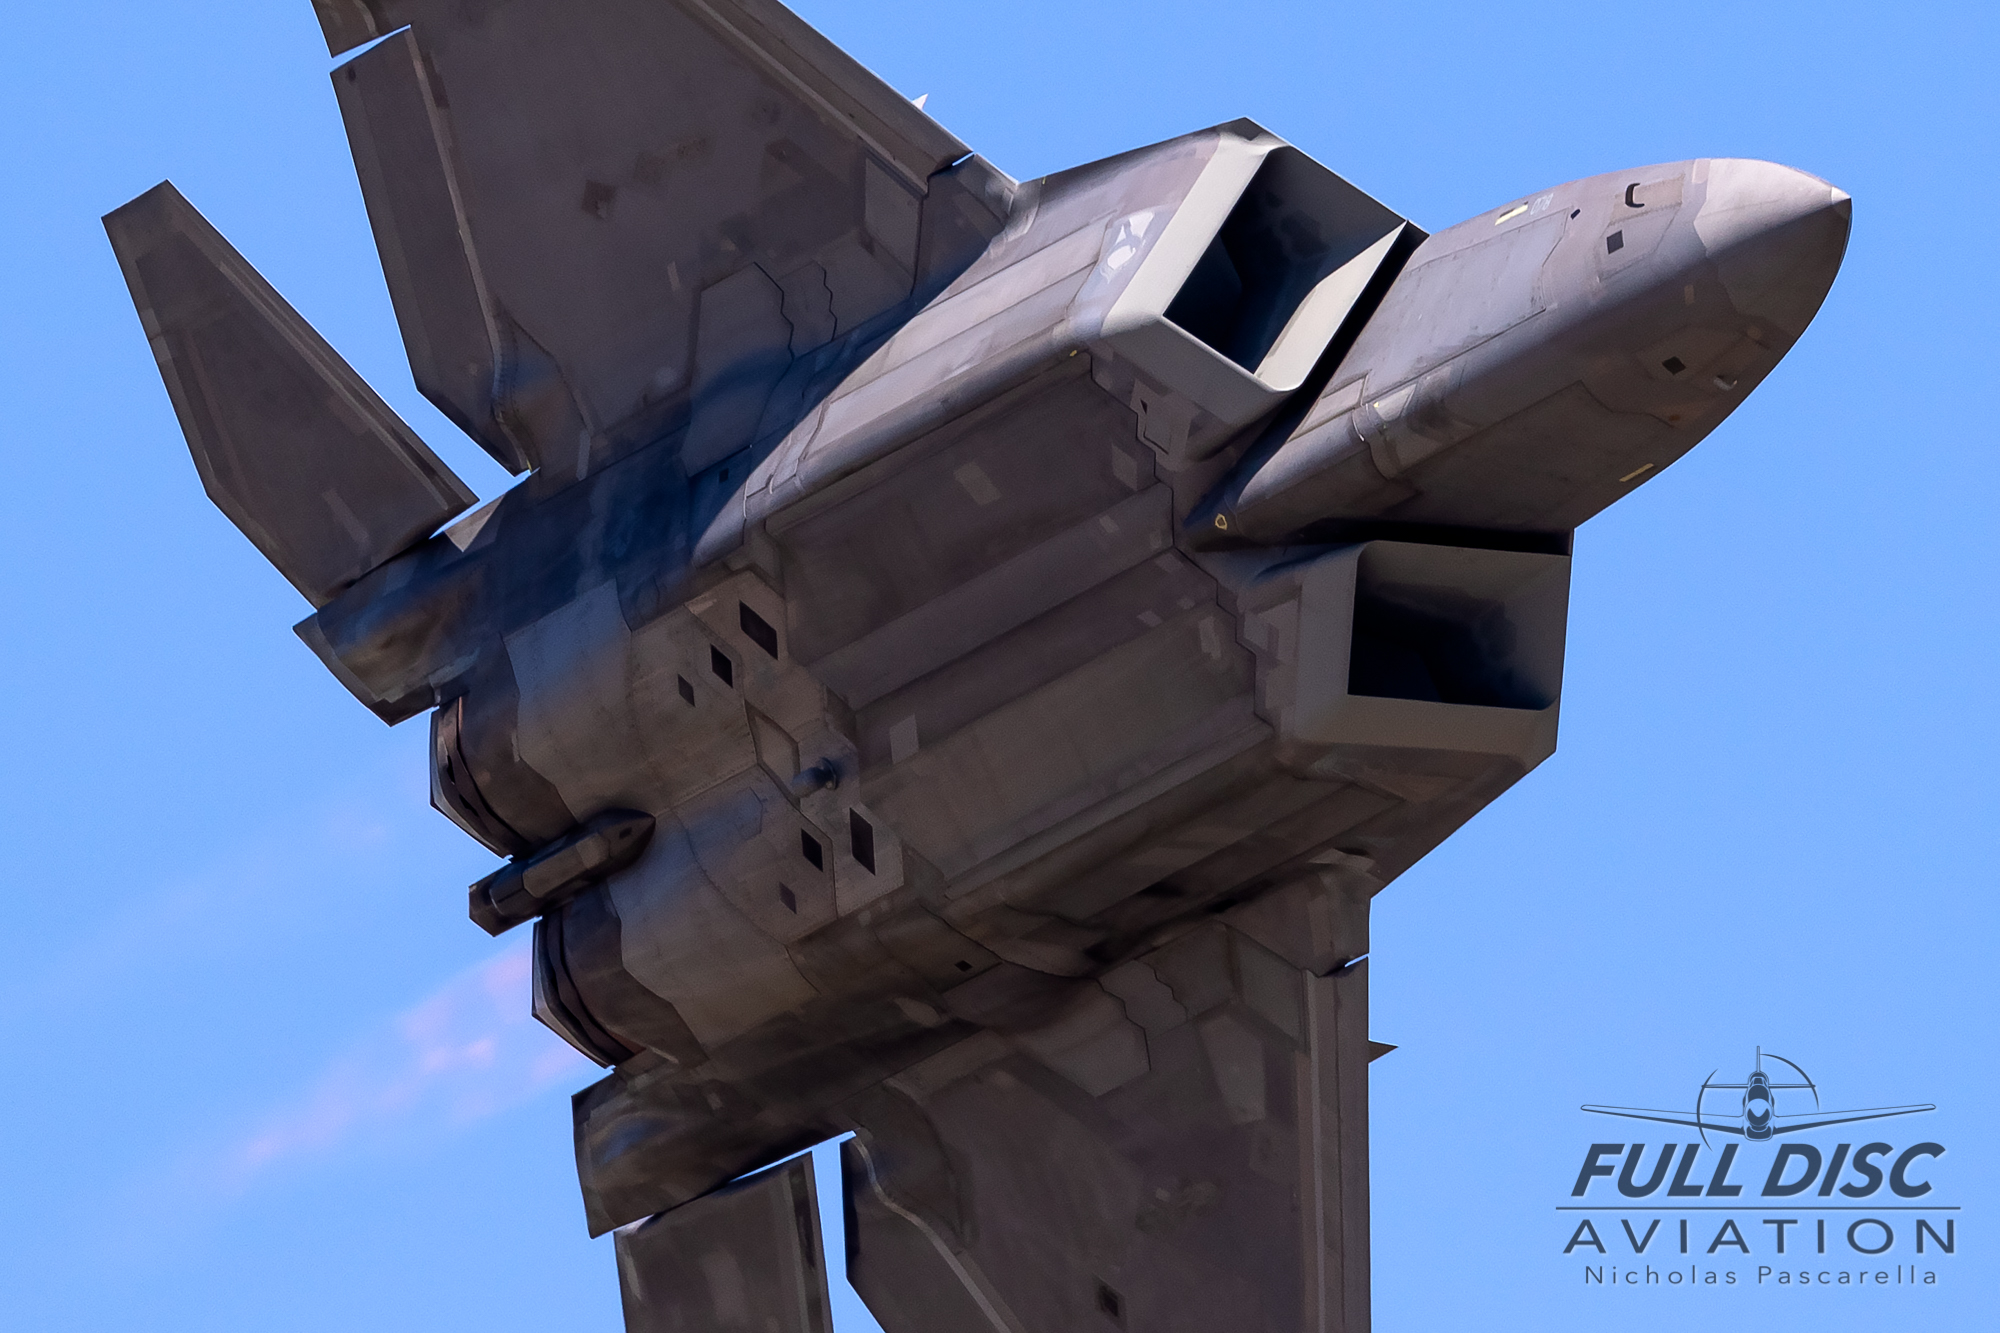 f22_underbelly_burners_turnandburn_nickpascarella_fulldiscaviation.jpg